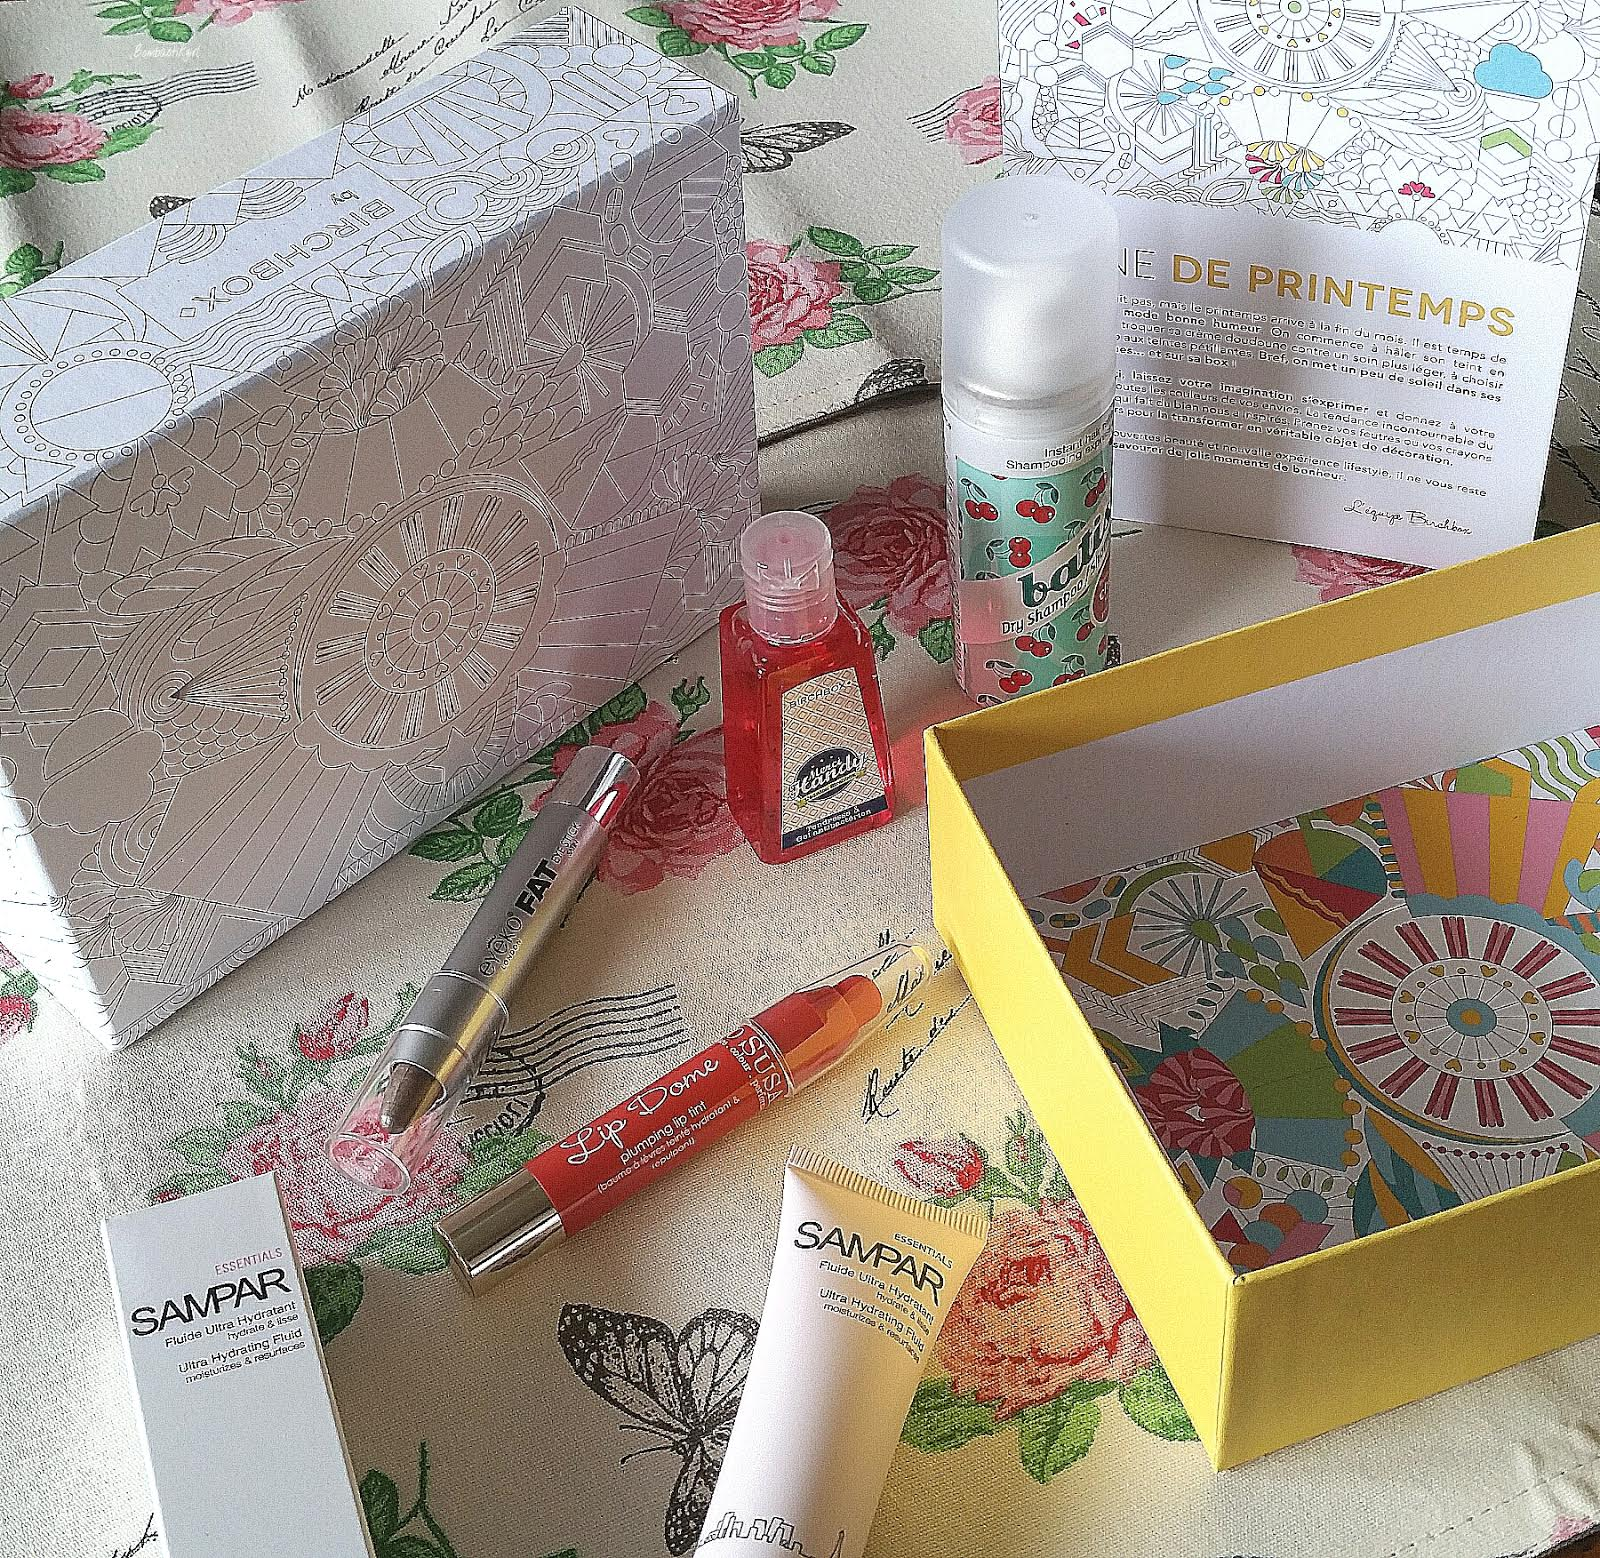 L'édition « Mine de Printemps » de Birchbox, j'adore !